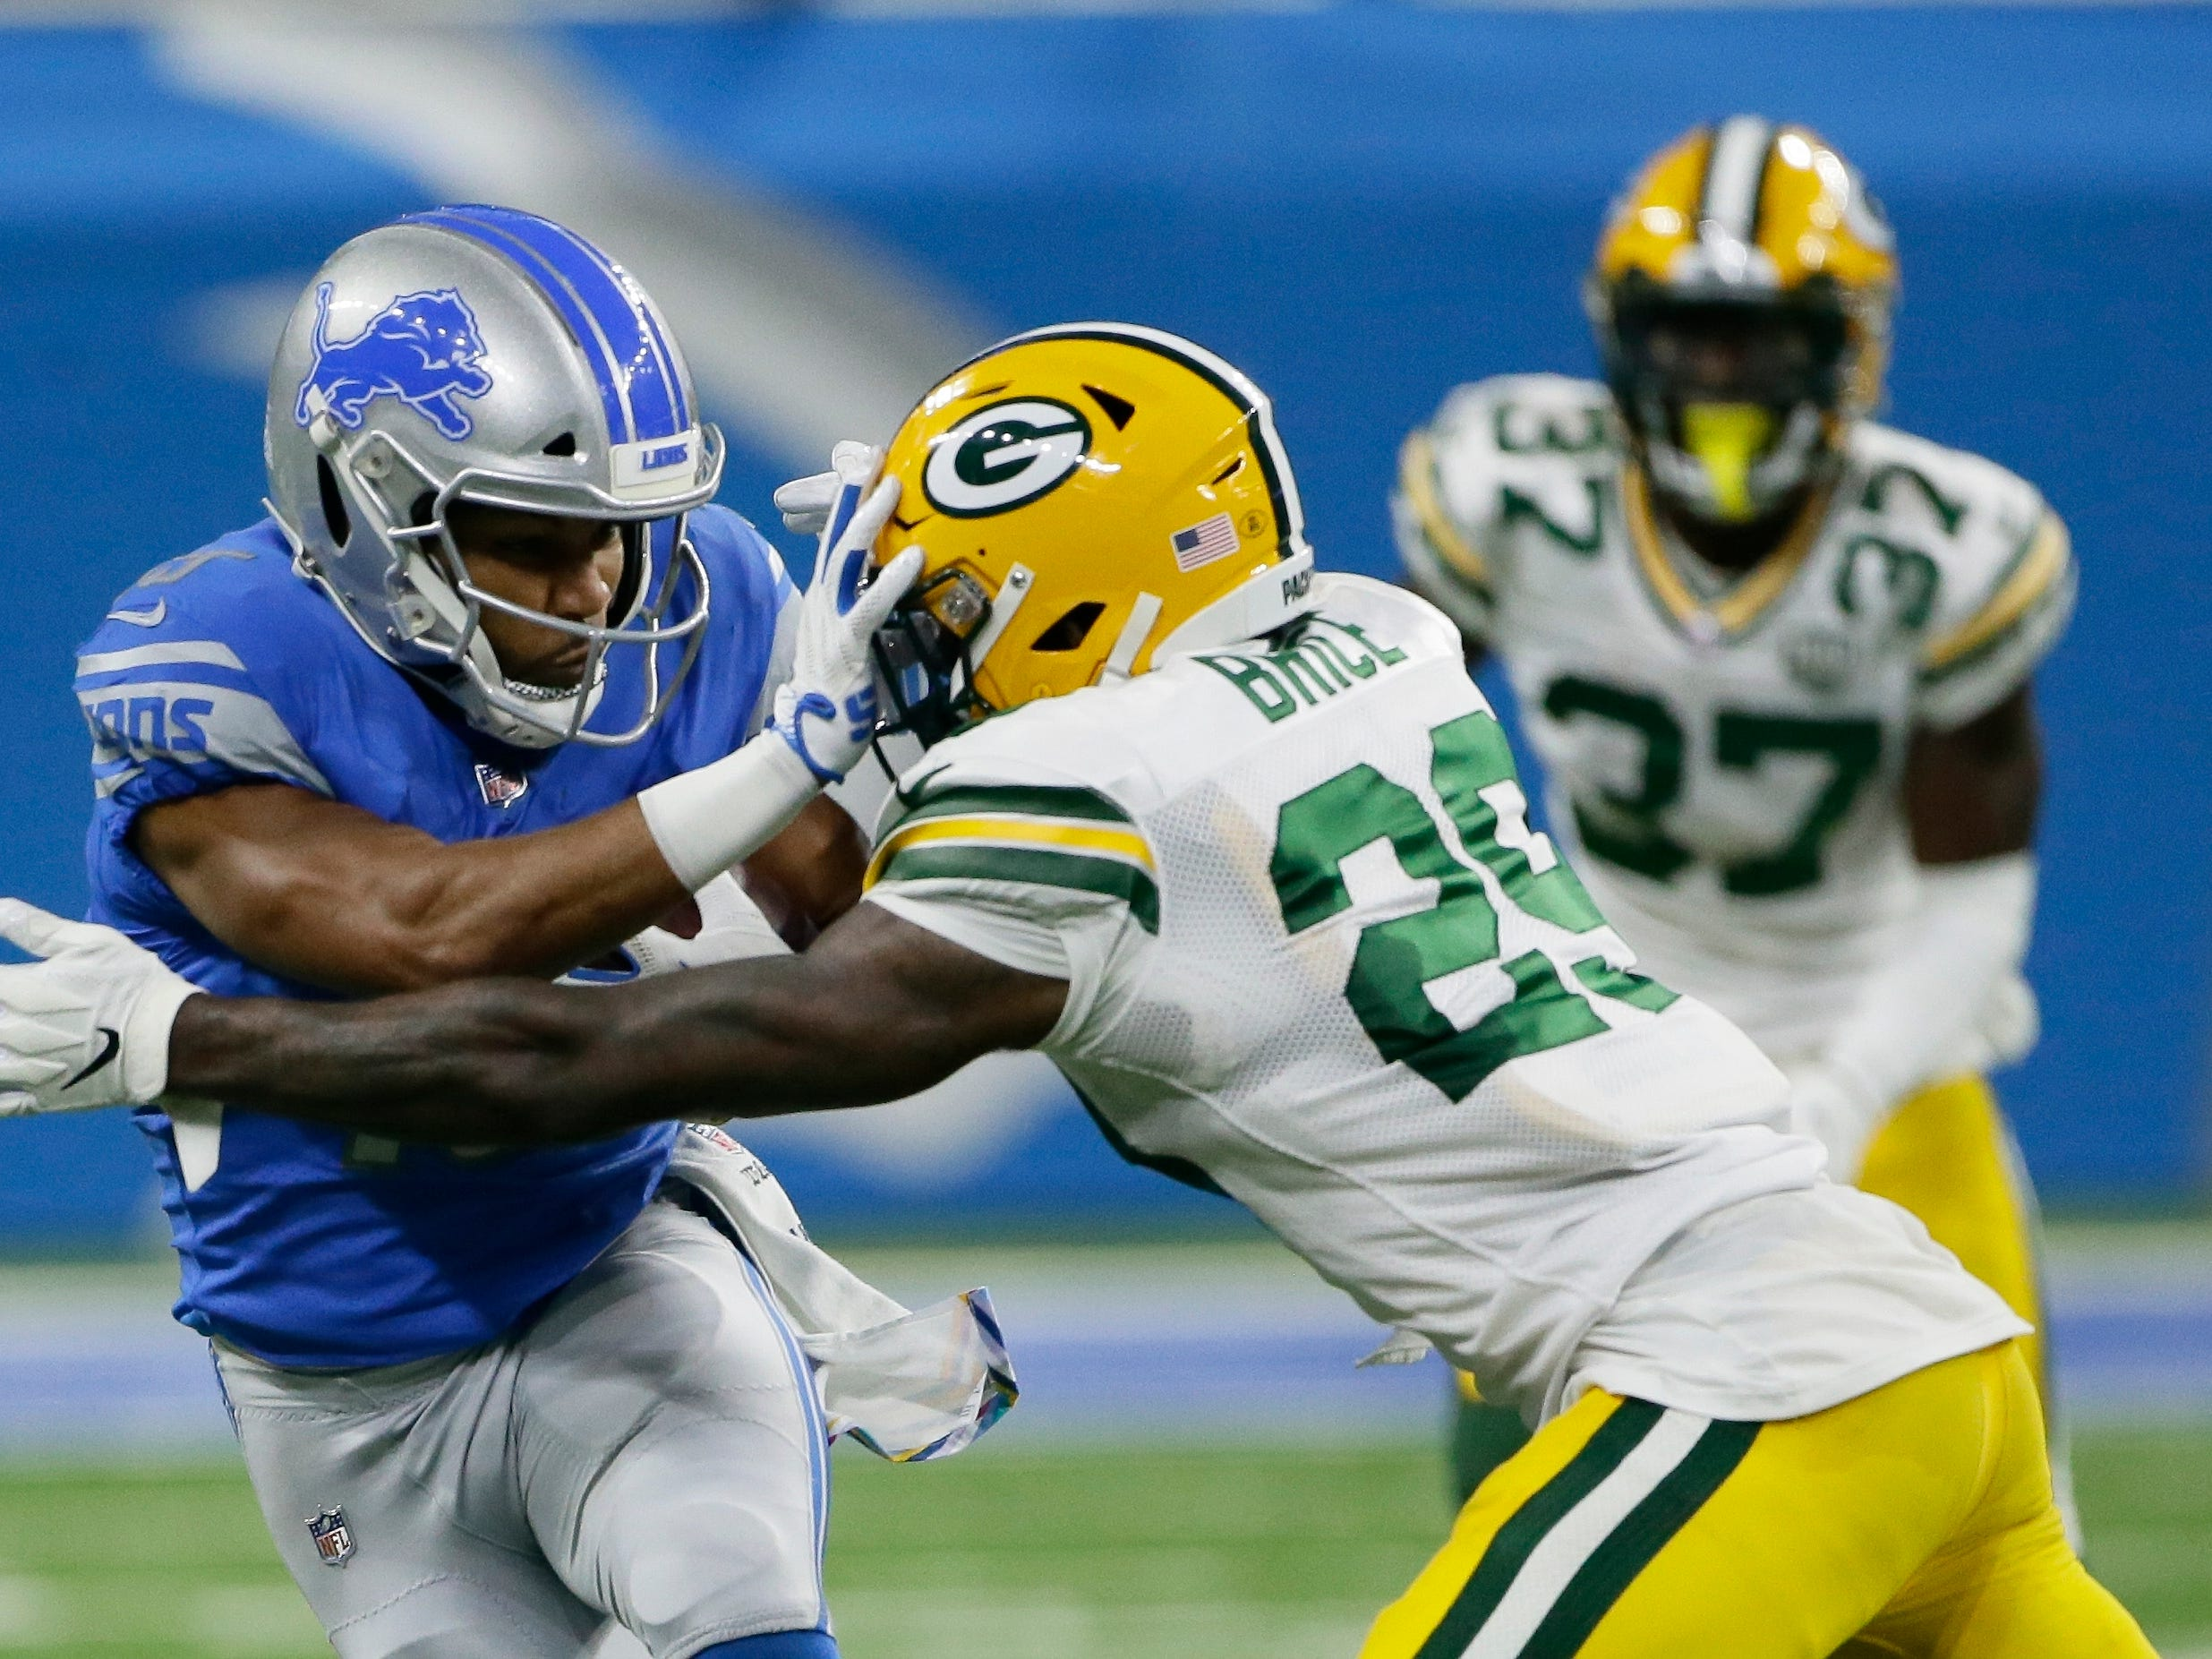 Detroit Lions wide receiver Golden Tate (15) pushes Green Bay Packers strong safety Kentrell Brice (29) during the second half of an NFL football game, Sunday, Oct. 7, 2018, in Detroit.